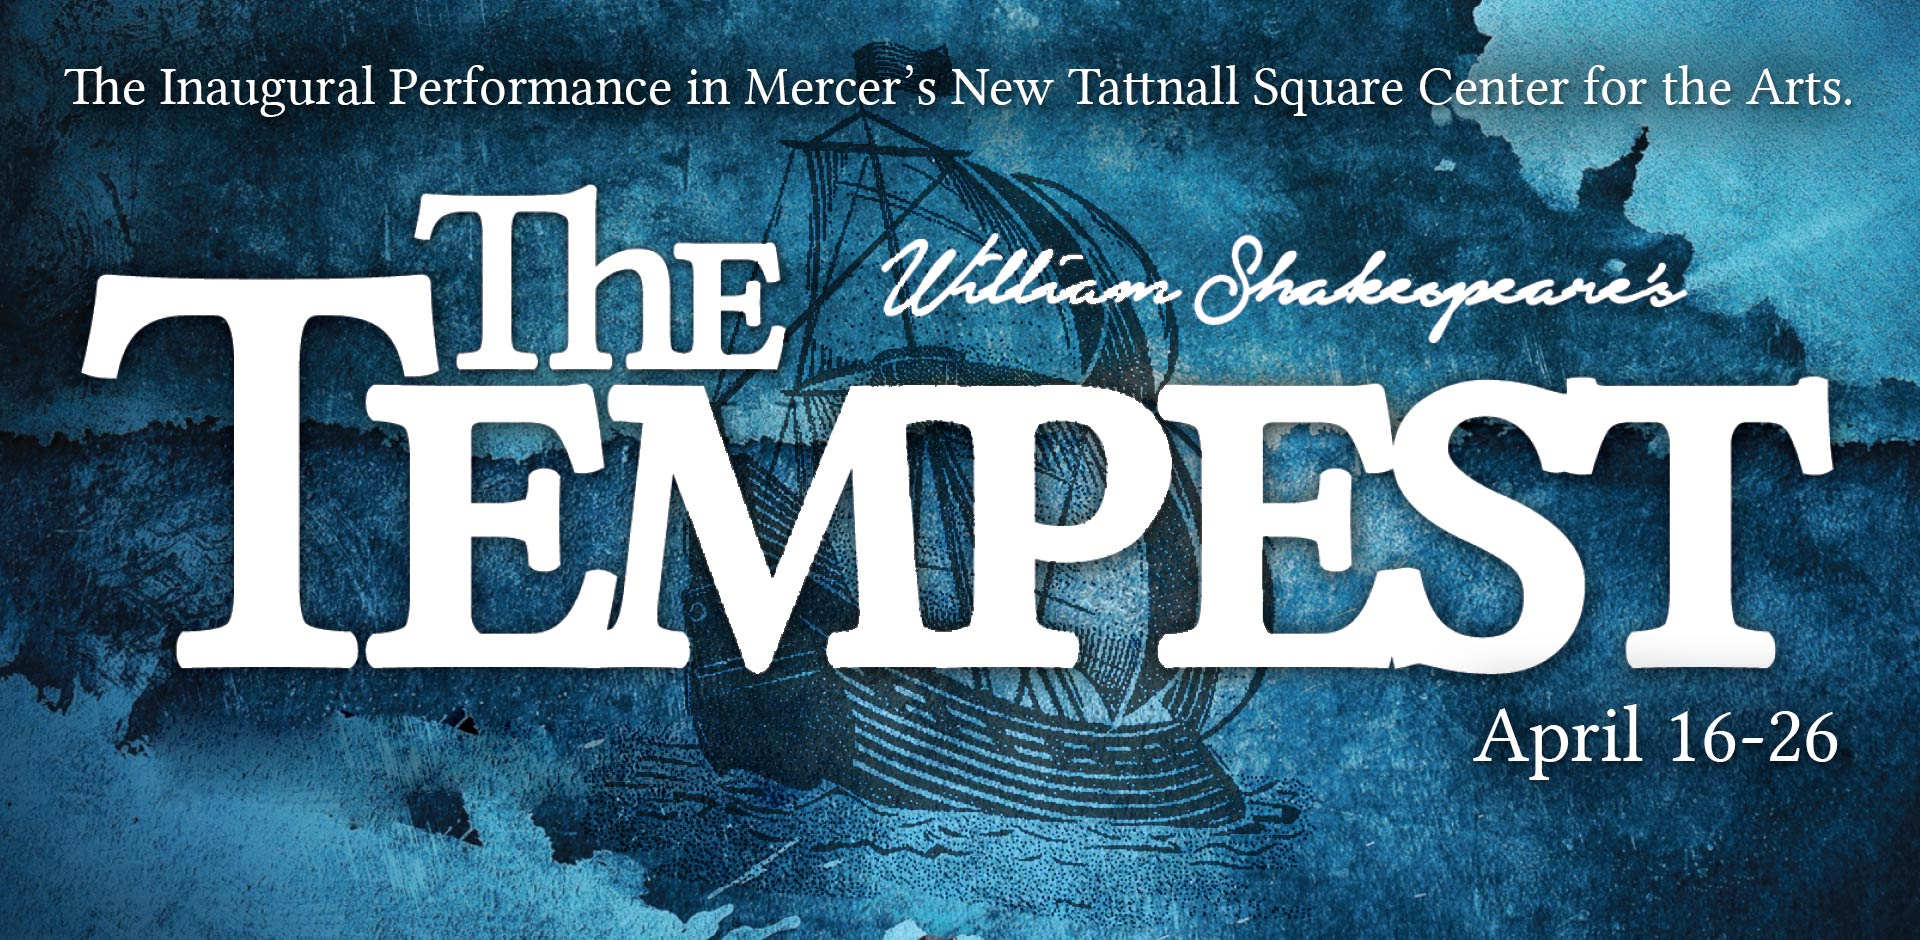 Theatre Department Presents 'The Tempest' April 16-26 as Part of Tattnall Square Center for the Arts Grand Opening